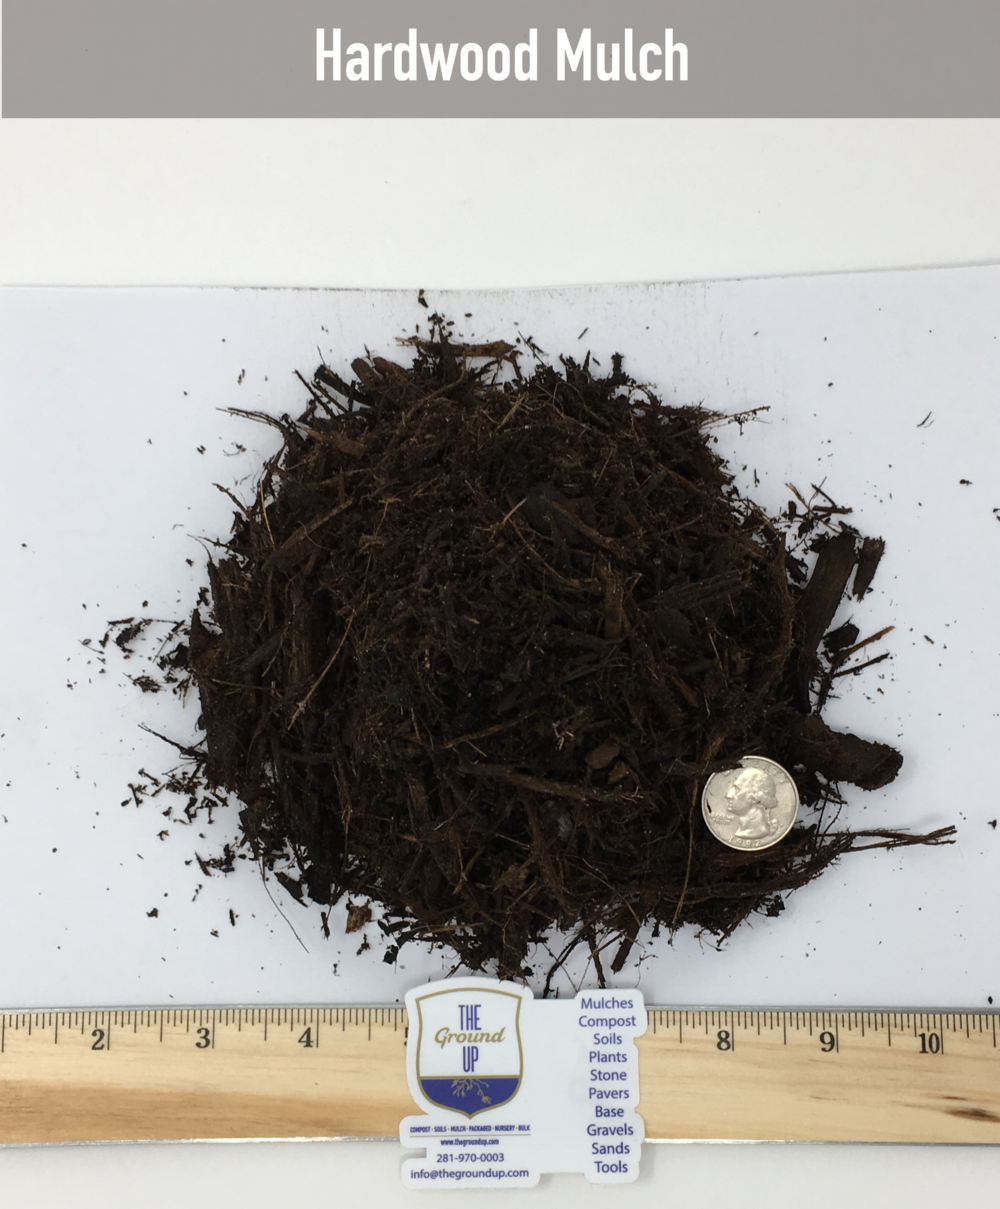 Double Shredded Native Hardwood mulch $25/cuyd  Our most popular mulch. This is a double shredded & composted mulch. Made from a mix of native woods, leaves, and clippings. Excellent for flowerbeds, control of soil temperatures, suppressor of weeds.